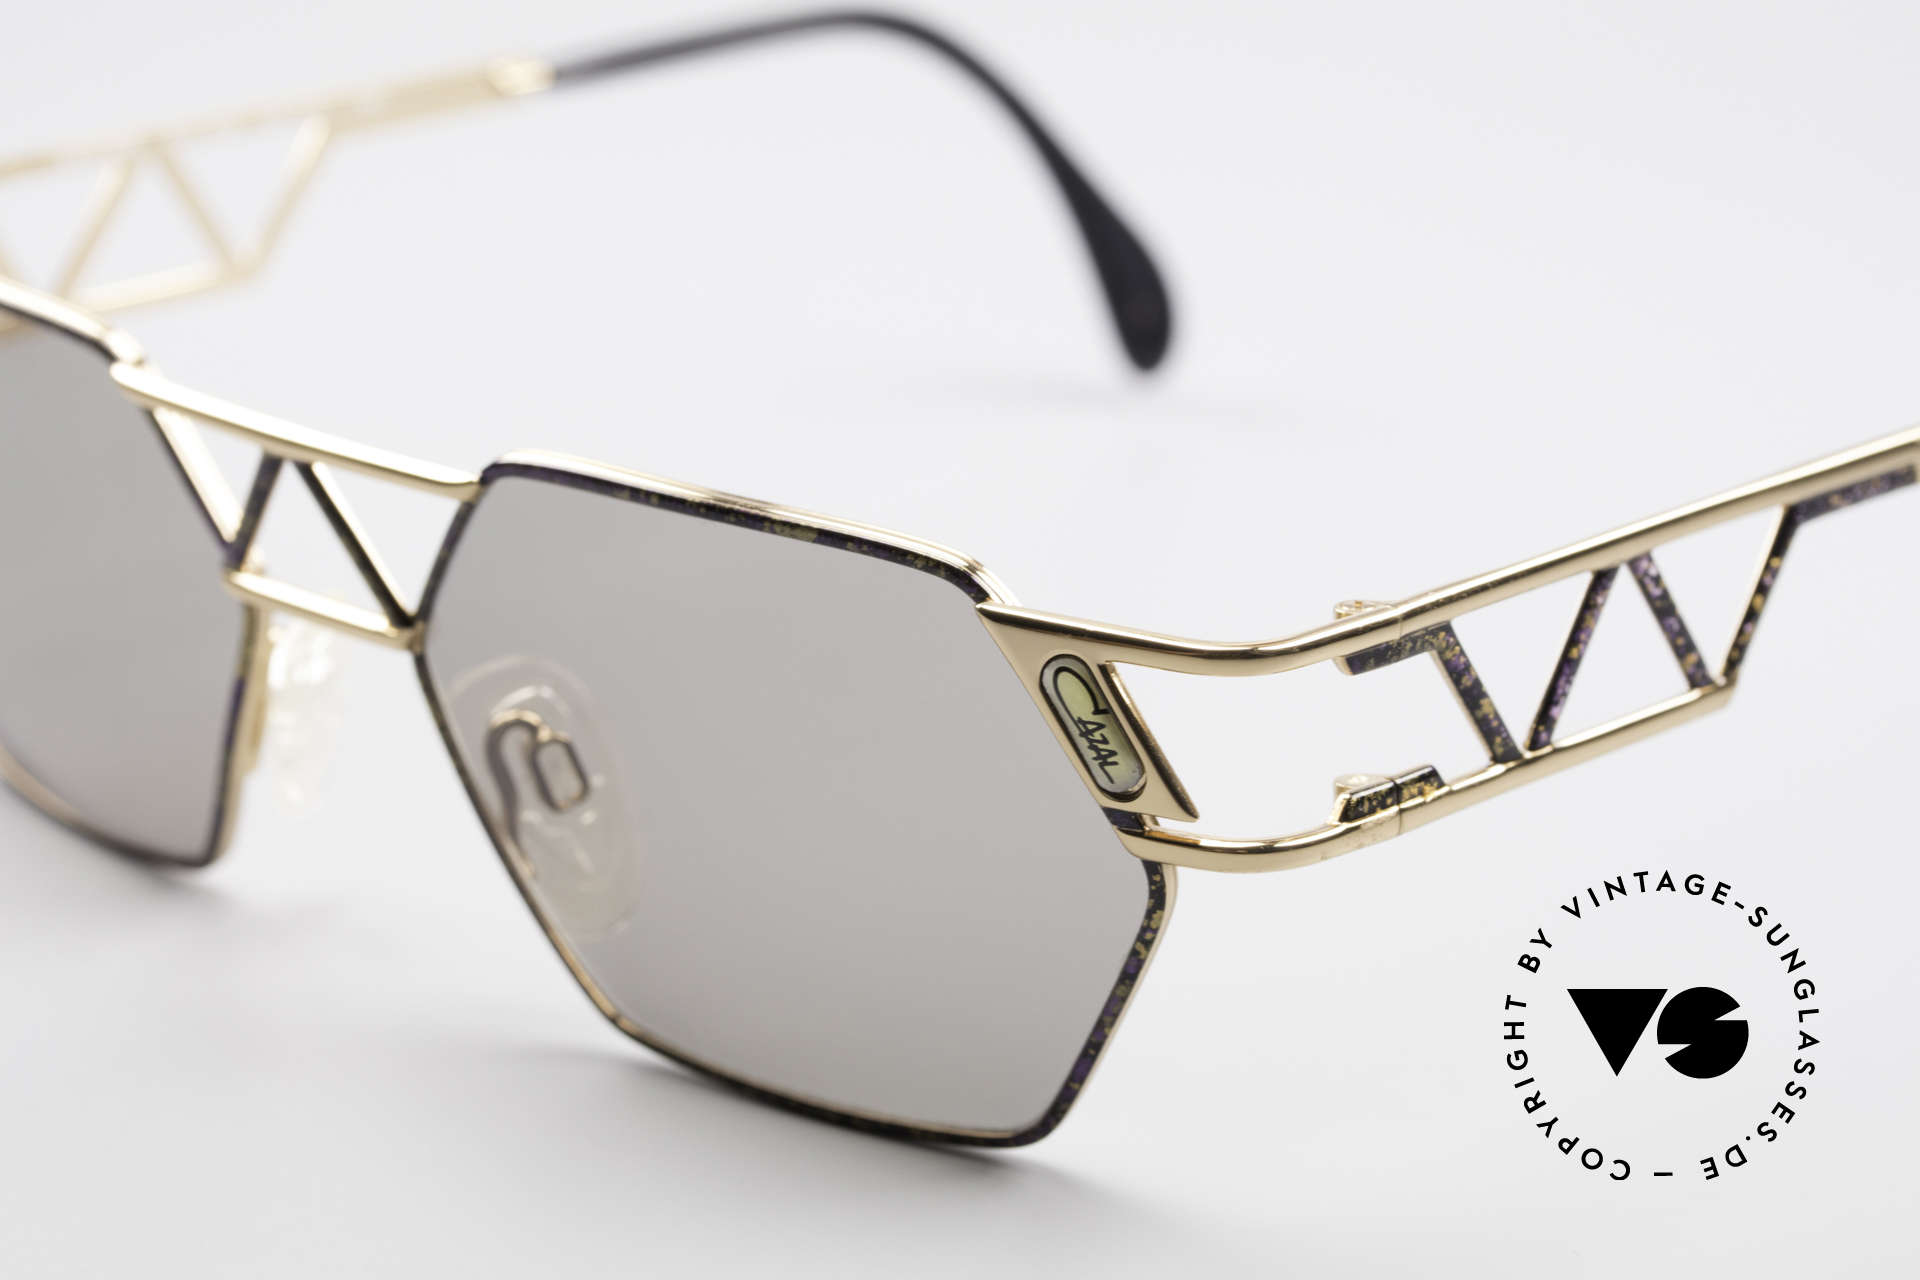 Cazal 960 Unique Designer Sunglasses, new old stock (like all our rare vintage Cazal eyewear), Made for Men and Women